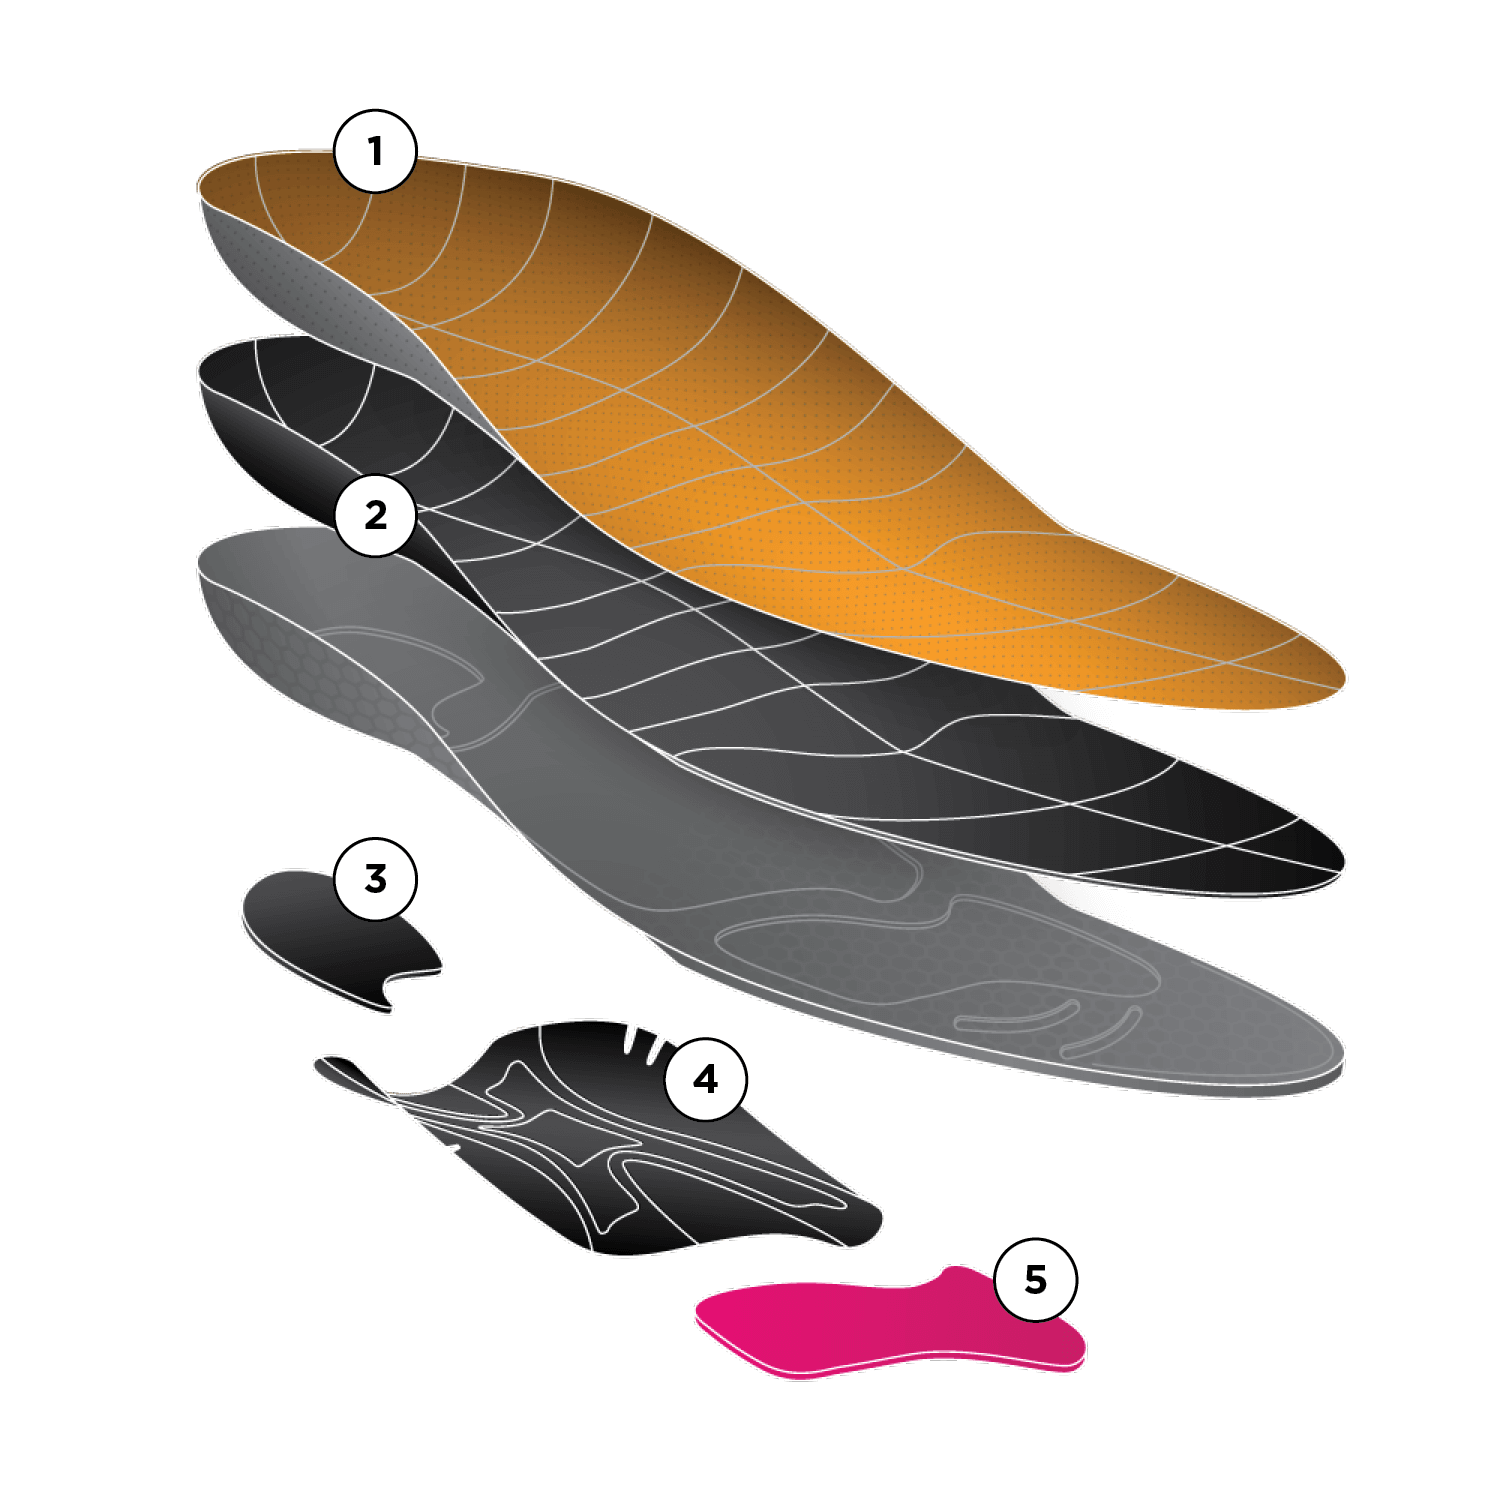 BIKEPRO™ Insoles   Insoles for Cycling & Biking   CURREX Insoles   CURREX US